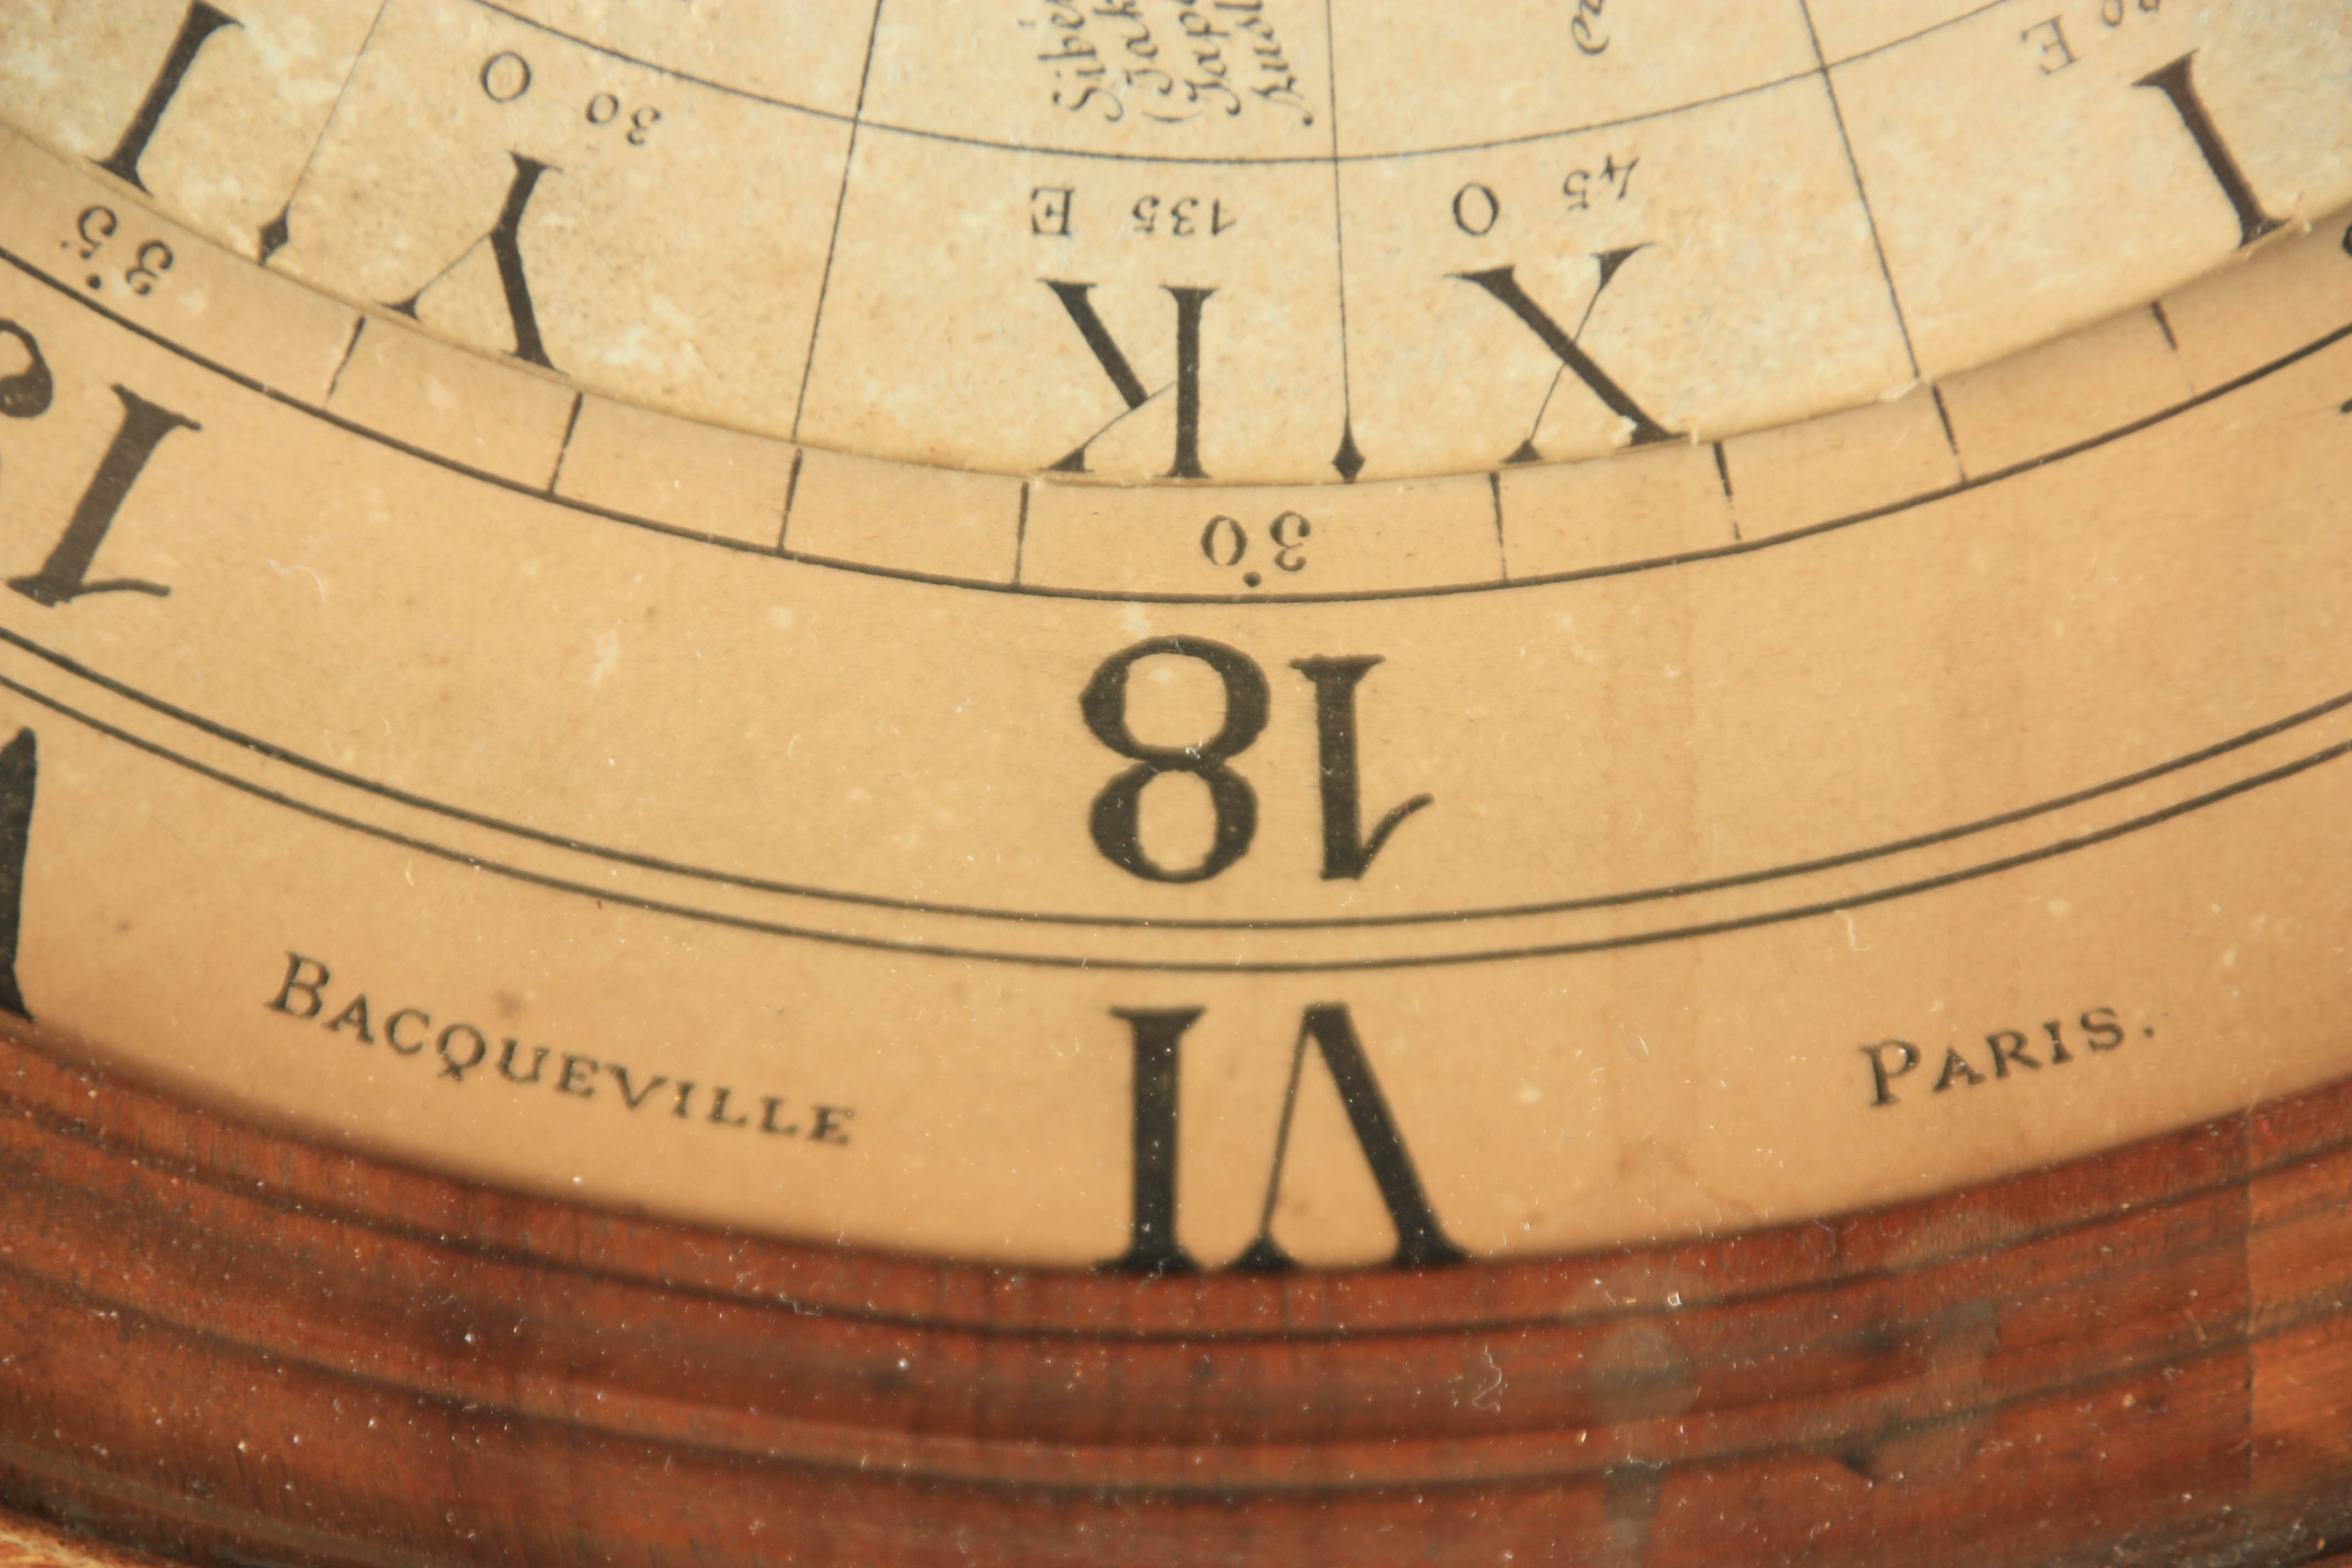 BACQUEVILLE, PARIS A UNIQUE LATE 19TH CENTURY LIMED OAK AND WALNUT WORLD TIME CLOCK the case with - Image 4 of 5